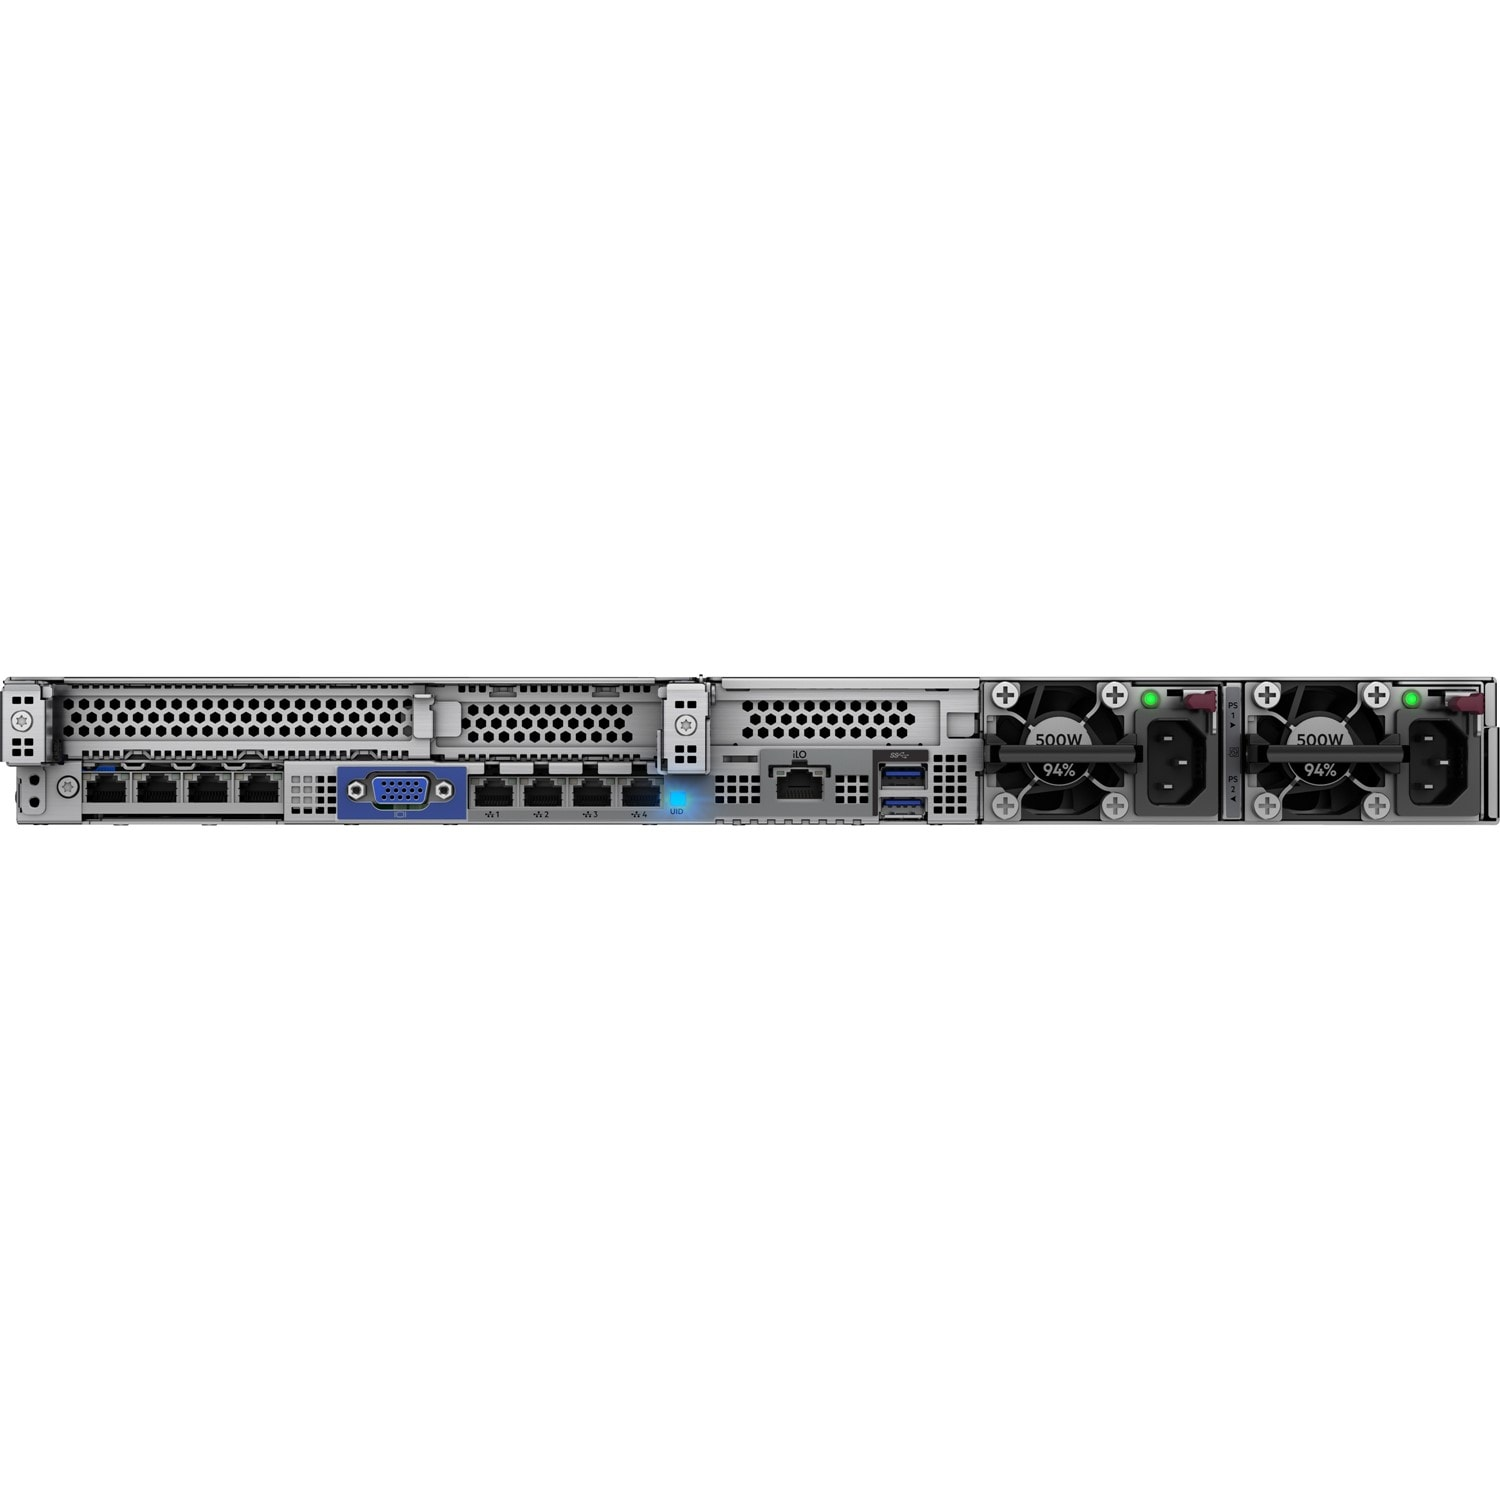 Buy HPE ProLiant DL325 G10 1U Rack Server - 1 x AMD EPYC